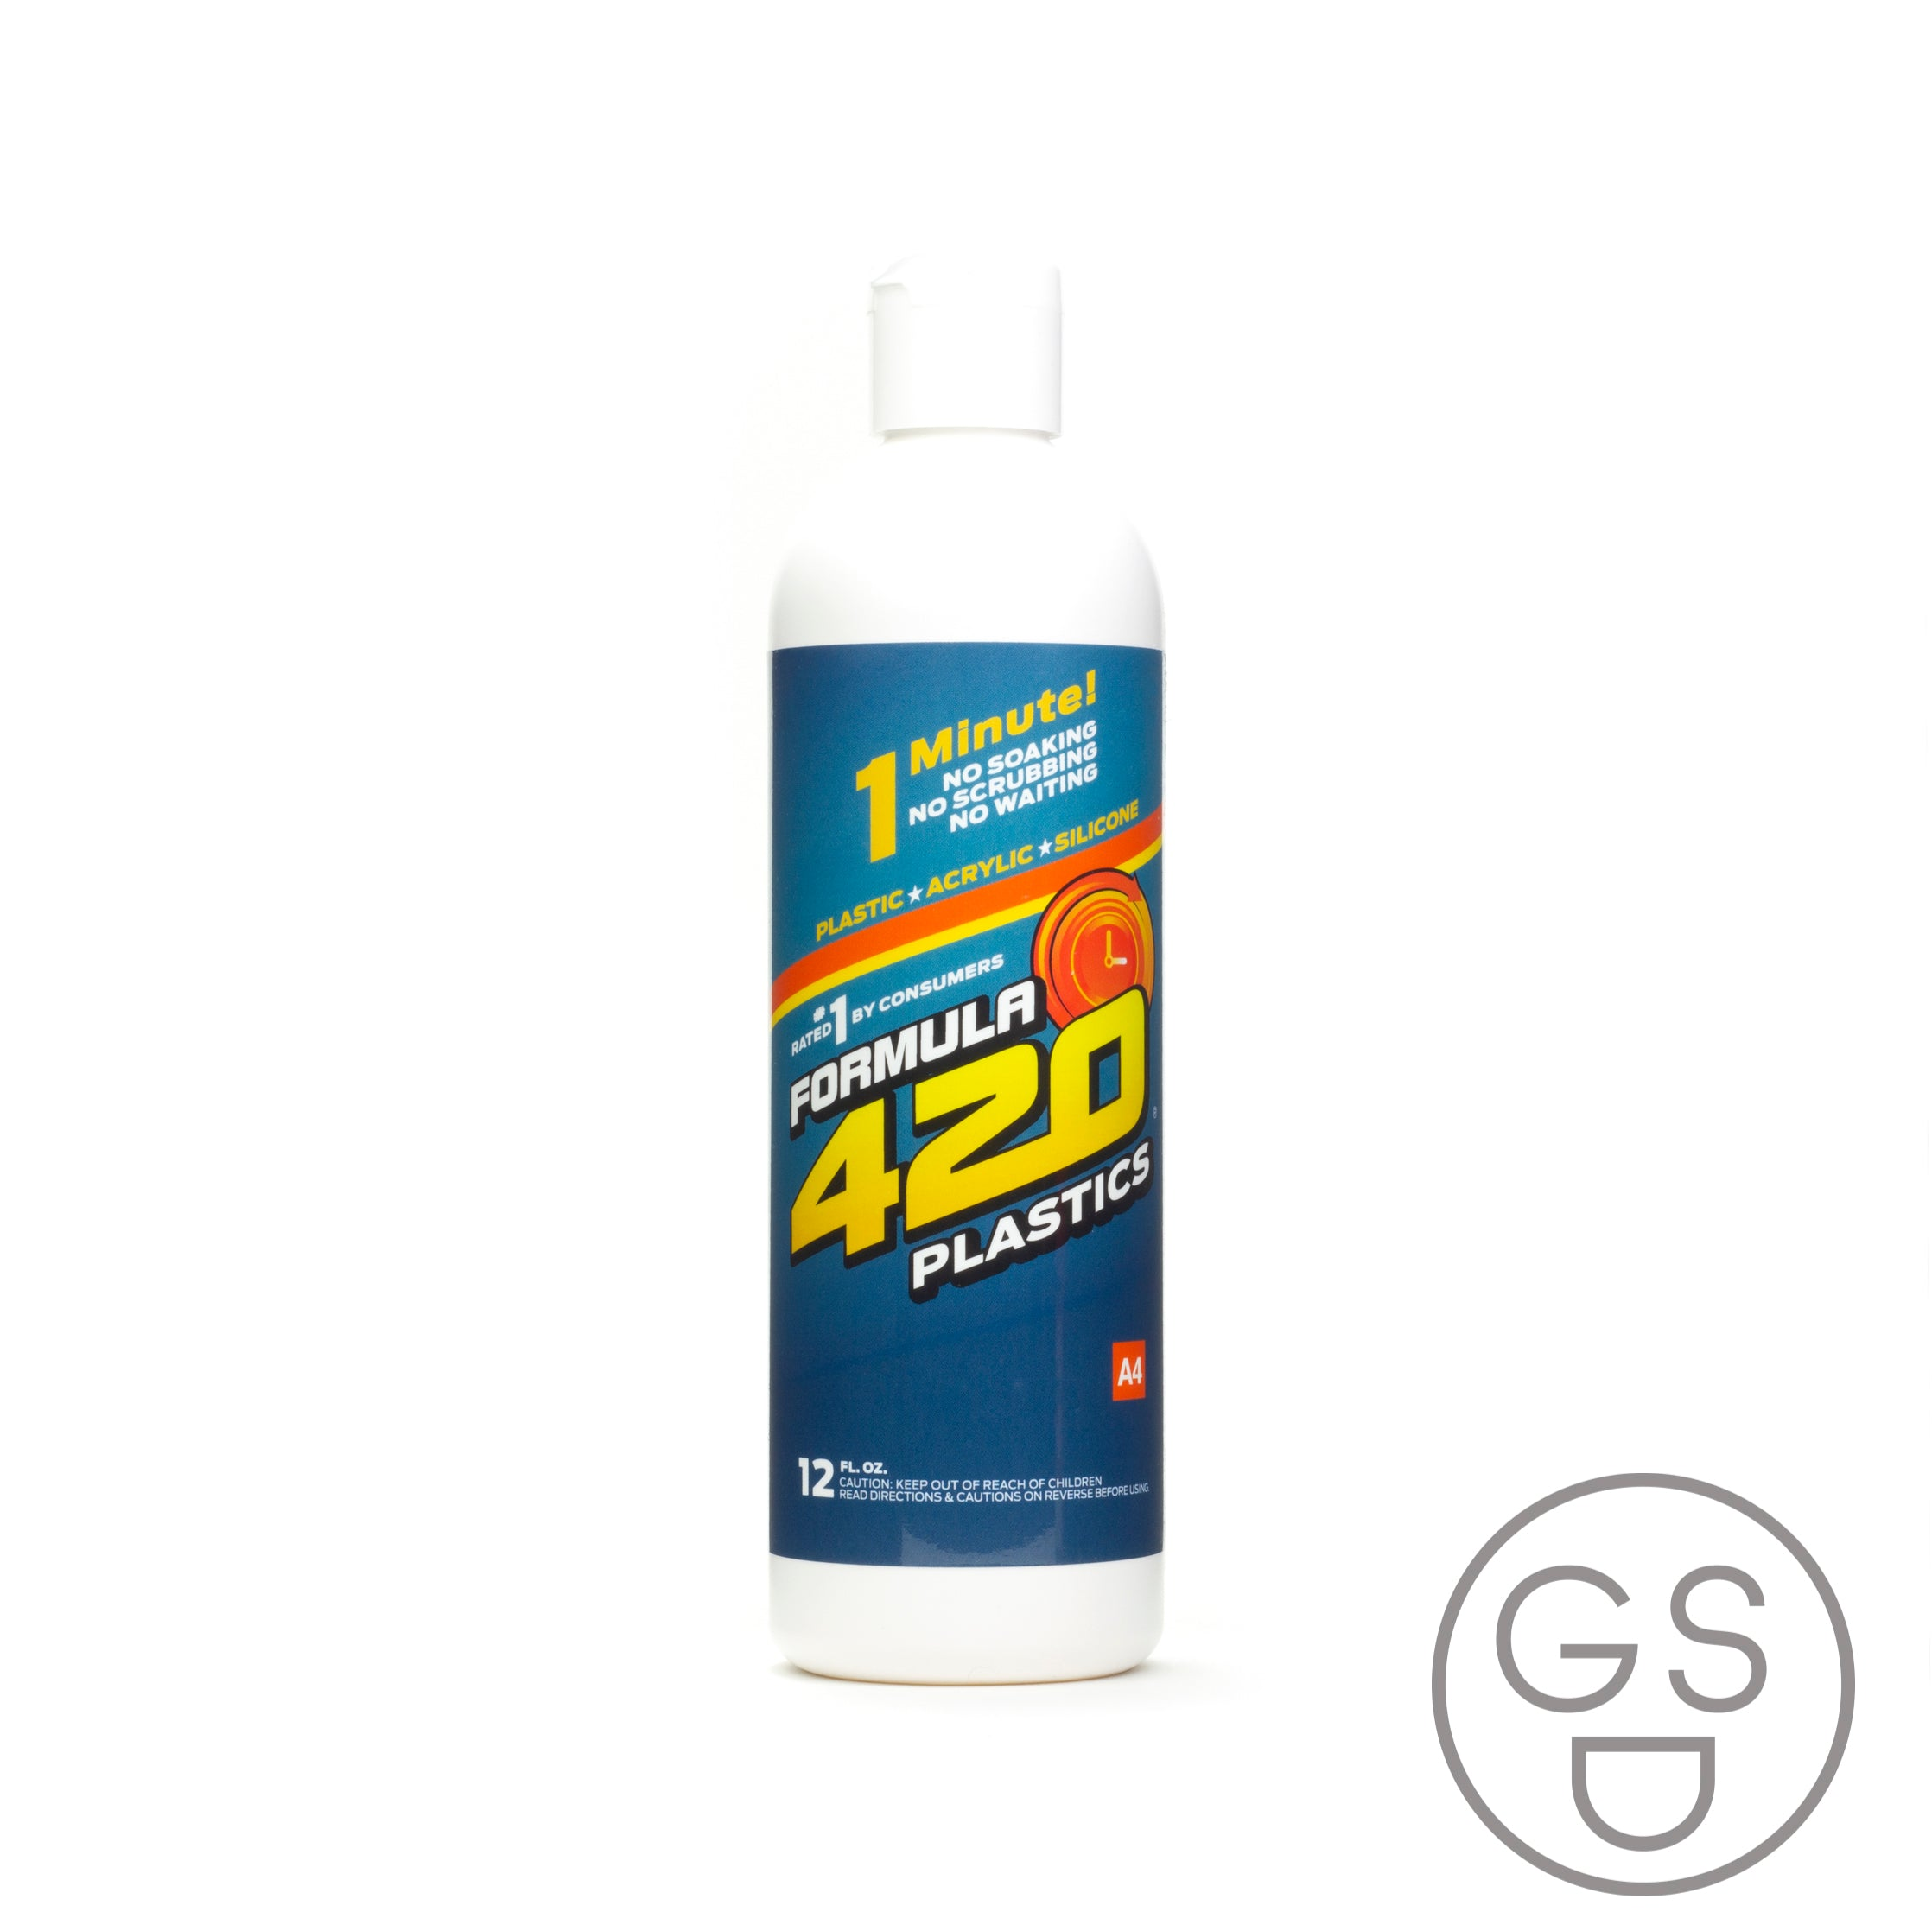 F-420 Plastics/Acrylic/Silicon Cleaner - 12oz/354ml